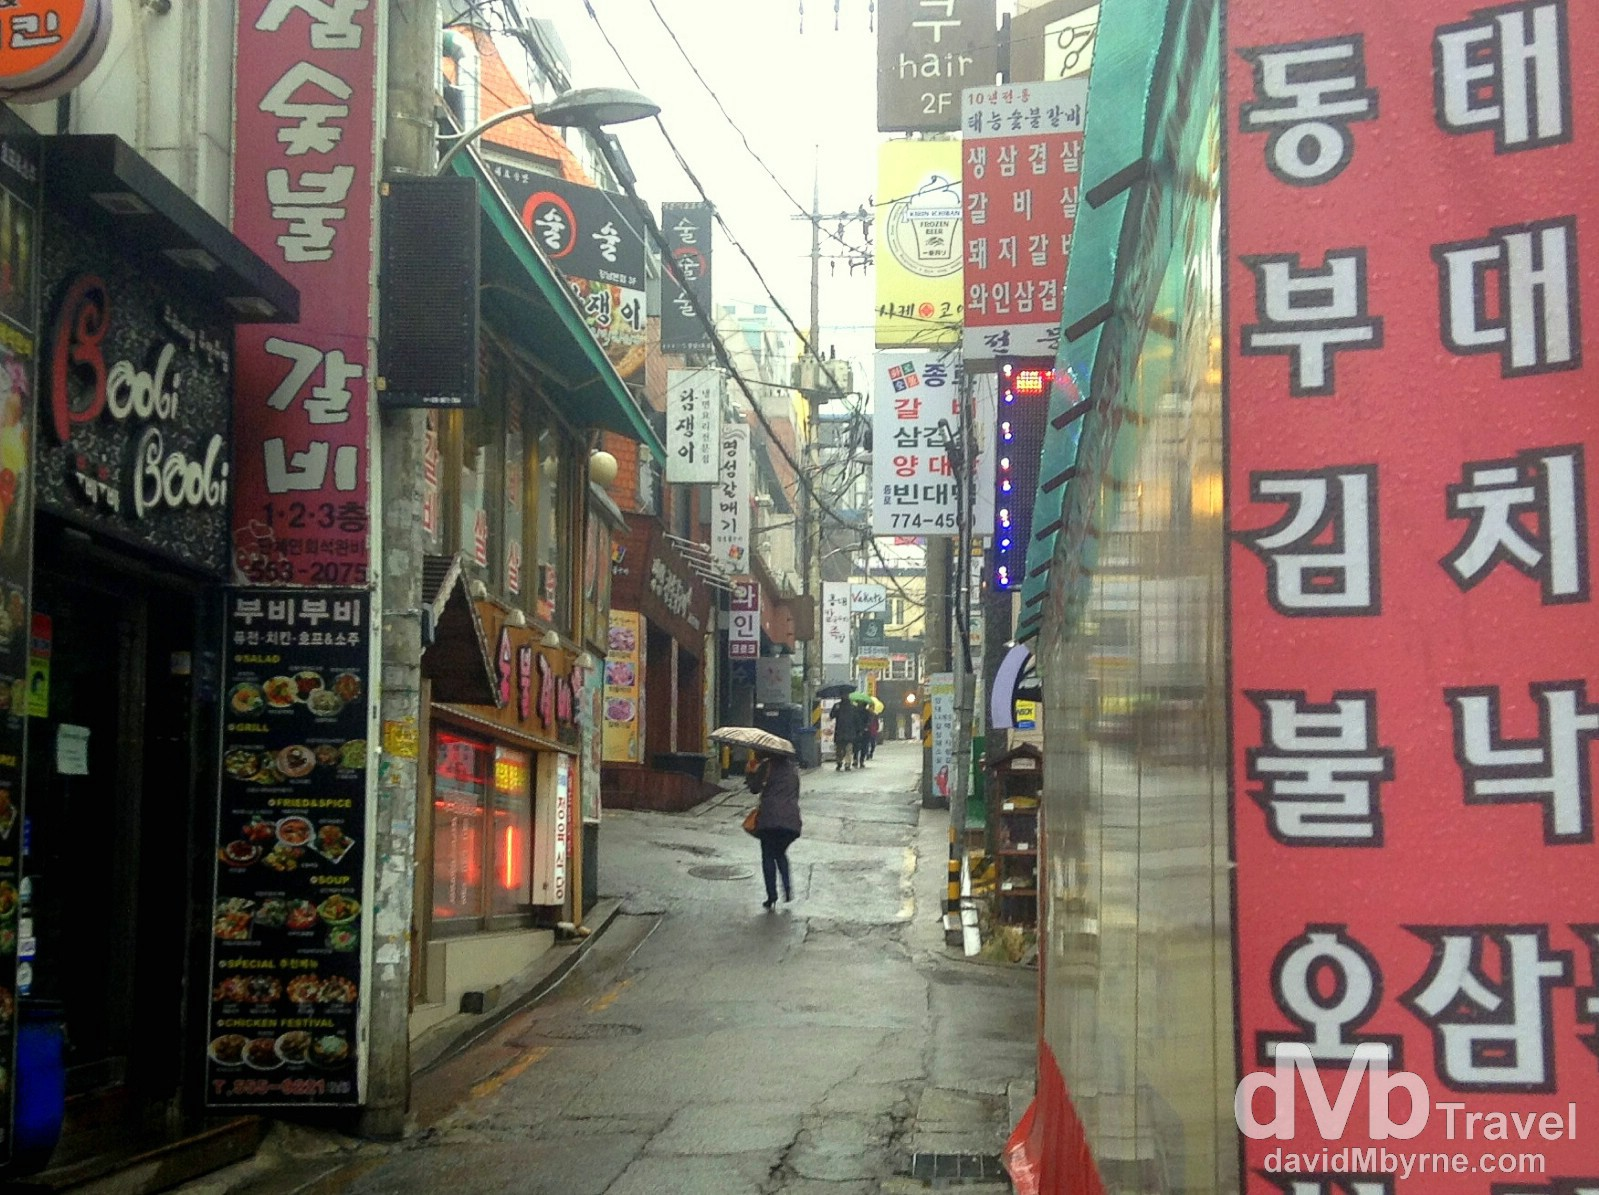 Hangul, the Korean alphabet, in the lanes of Gangnam, Seoul, South Korea. January 25th 2014.